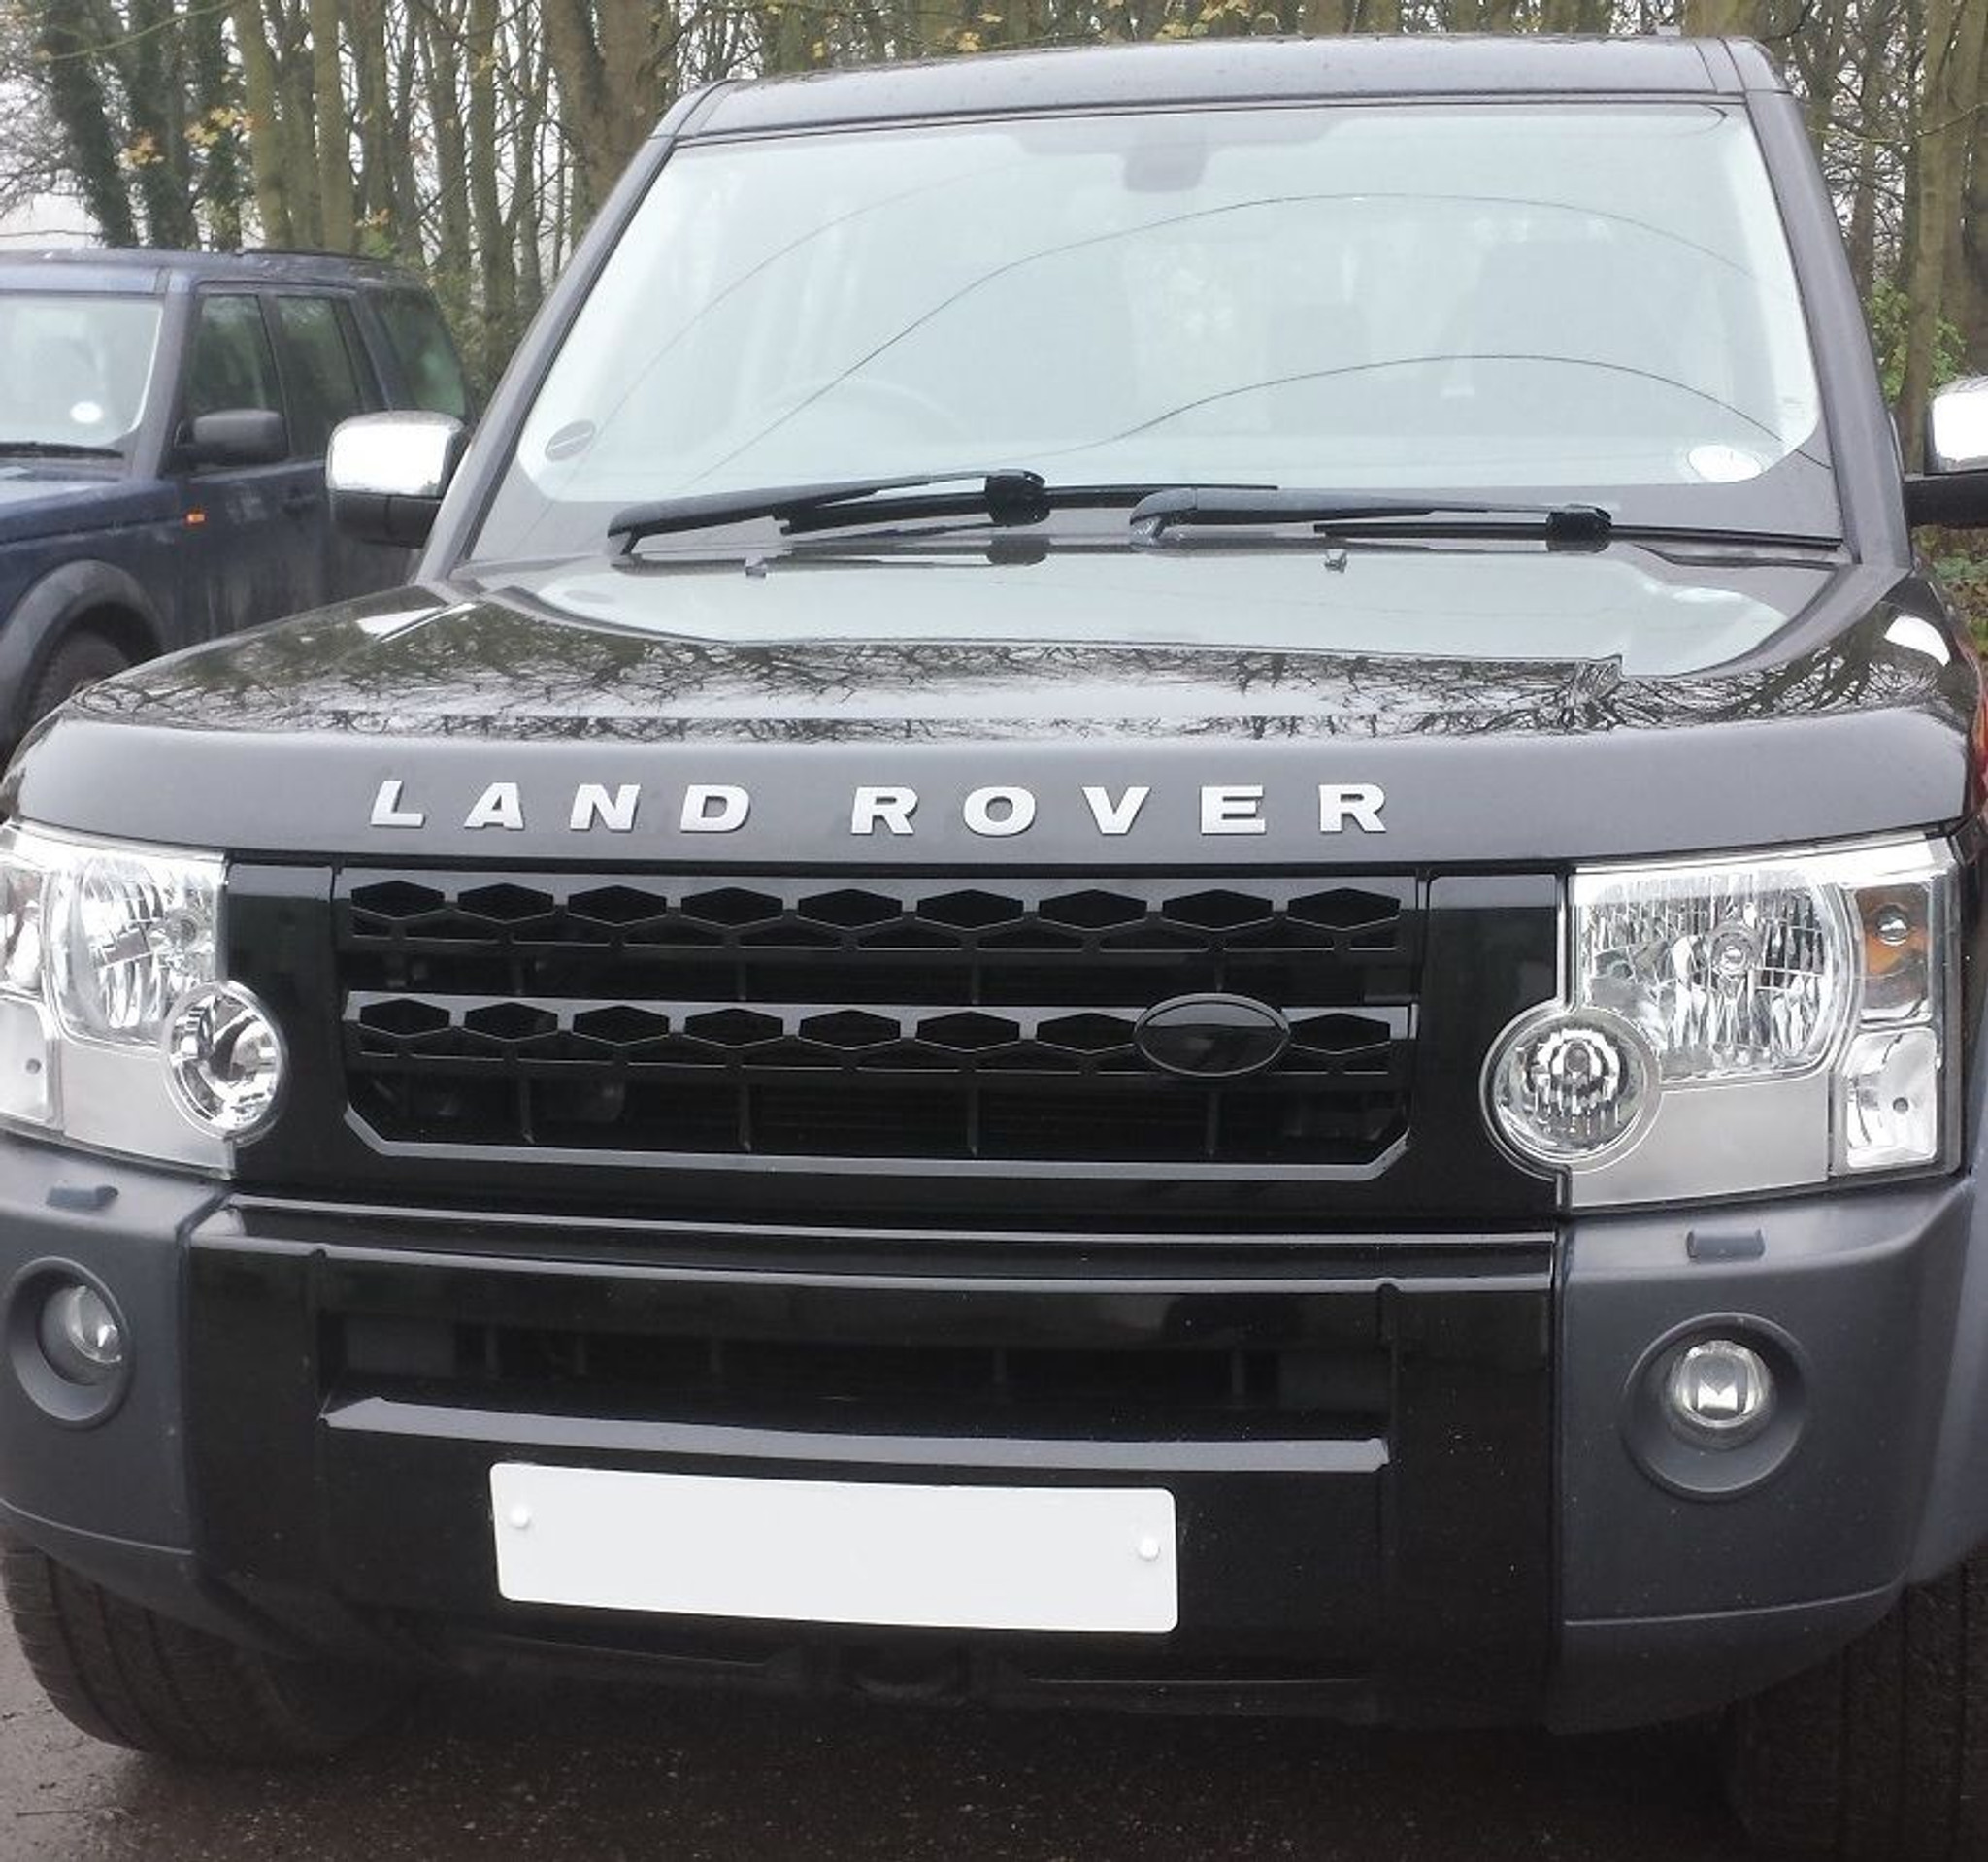 Land Rover Discovery 3 Front Grille To Discovery 4